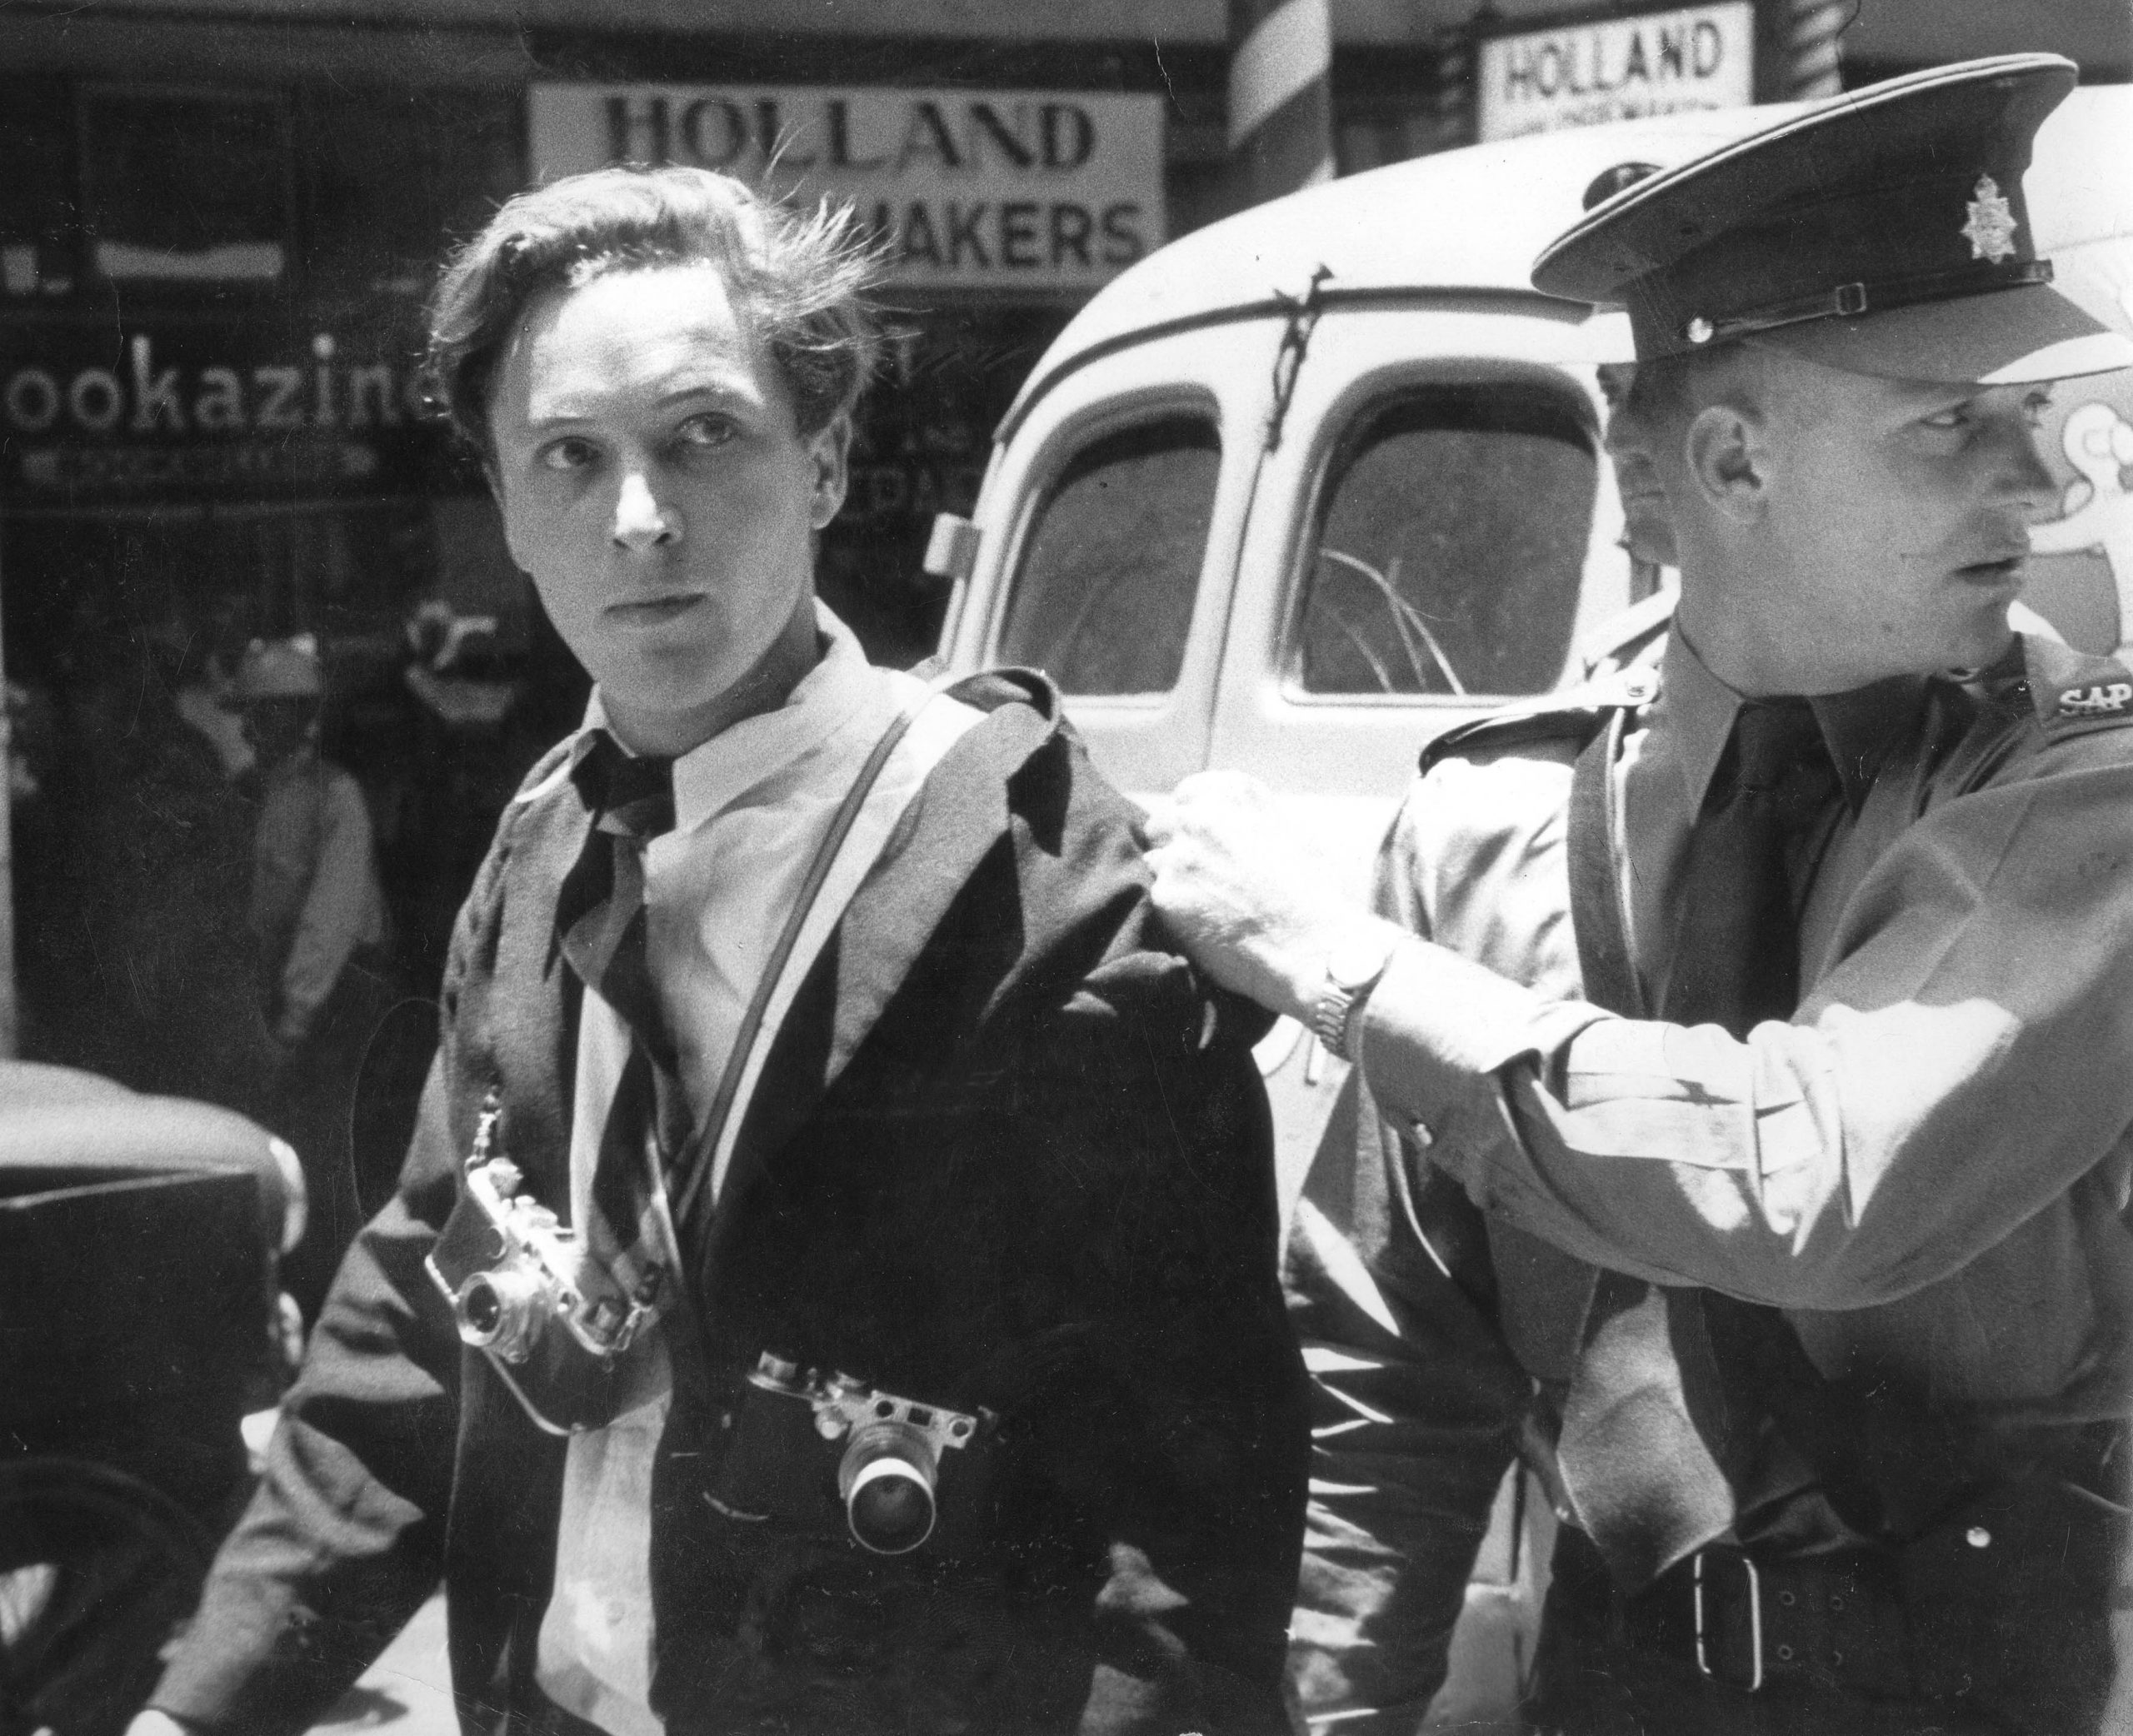 Circa 1958: Jürgen Schadeberg being arrested in Johannesburg for protecting one of his colleagues at Drum magazine. (Photograph by Ian Berry, courtesy of the Jürgen Schadeberg estate)